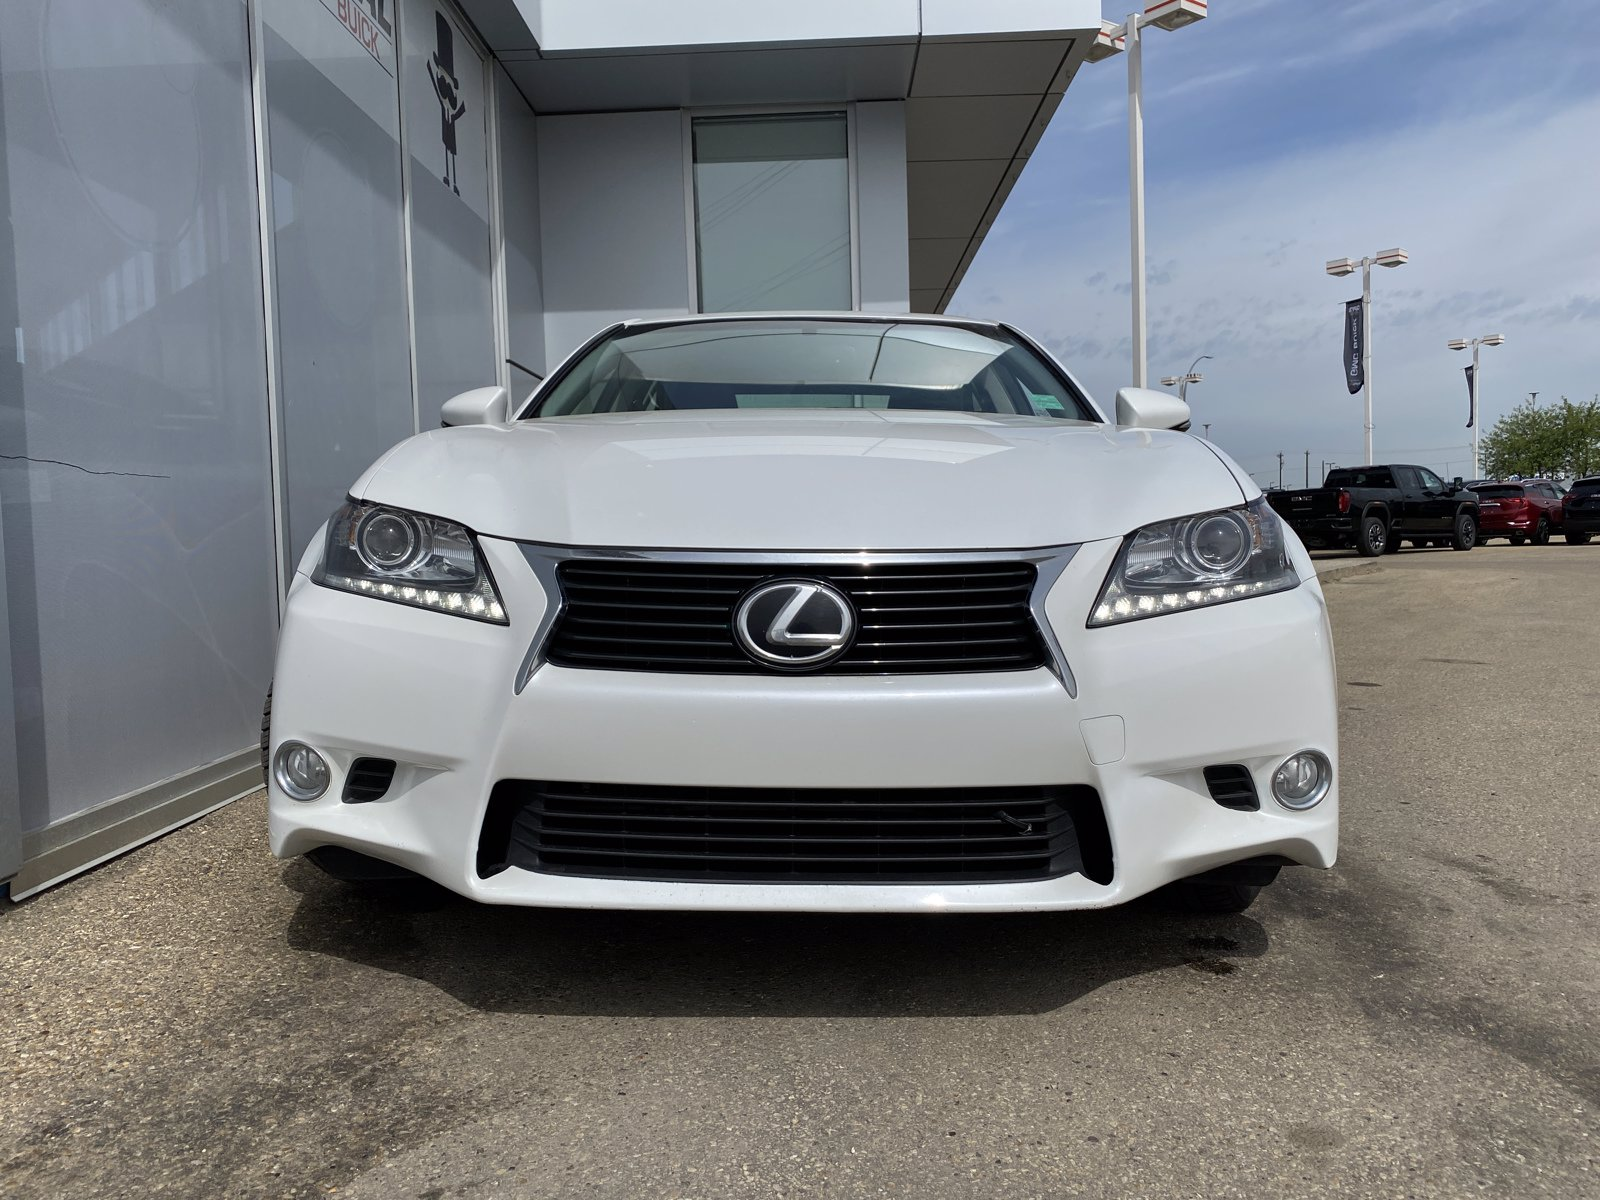 Certified Pre-Owned 2015 Lexus GS 350 AWD SUNROOF NAV HEATED STEERING HTD & COOLED SEATS